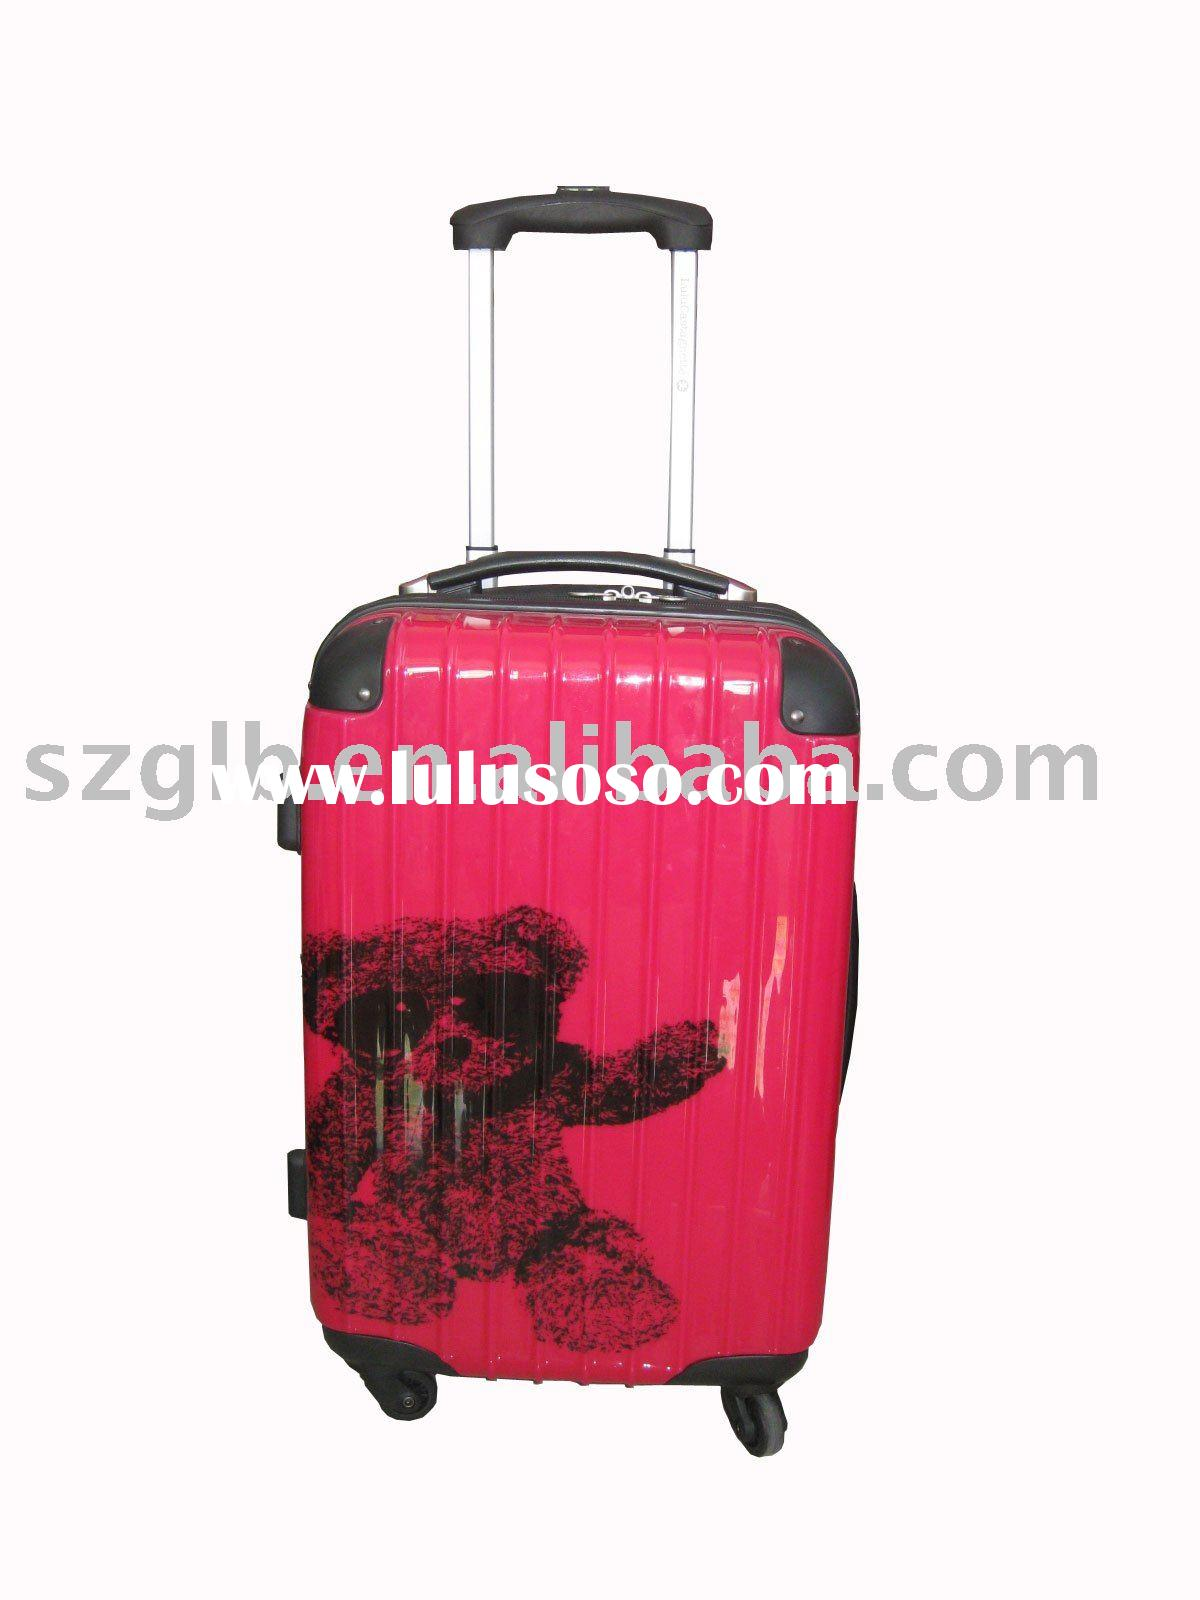 ABS/PC trolley case,ABS/PC luggage